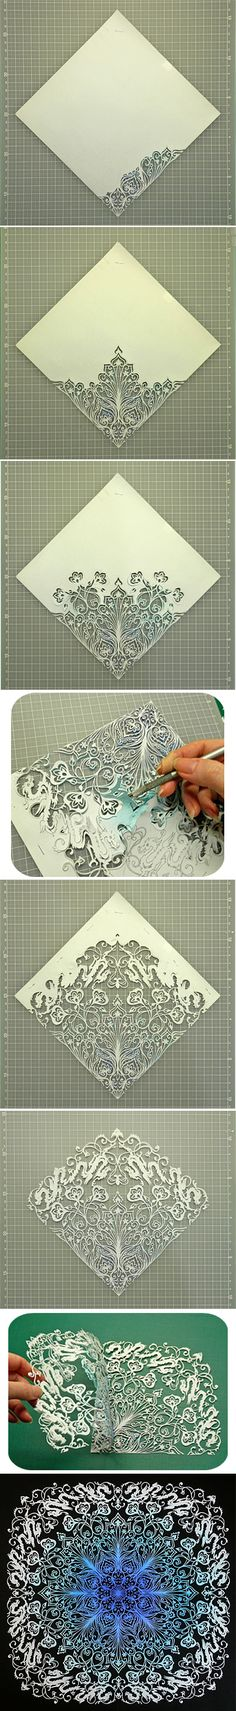 Japanese Kirigami Art(Cut Paper). by Syandery. JAPANESE ARE GENIUSES